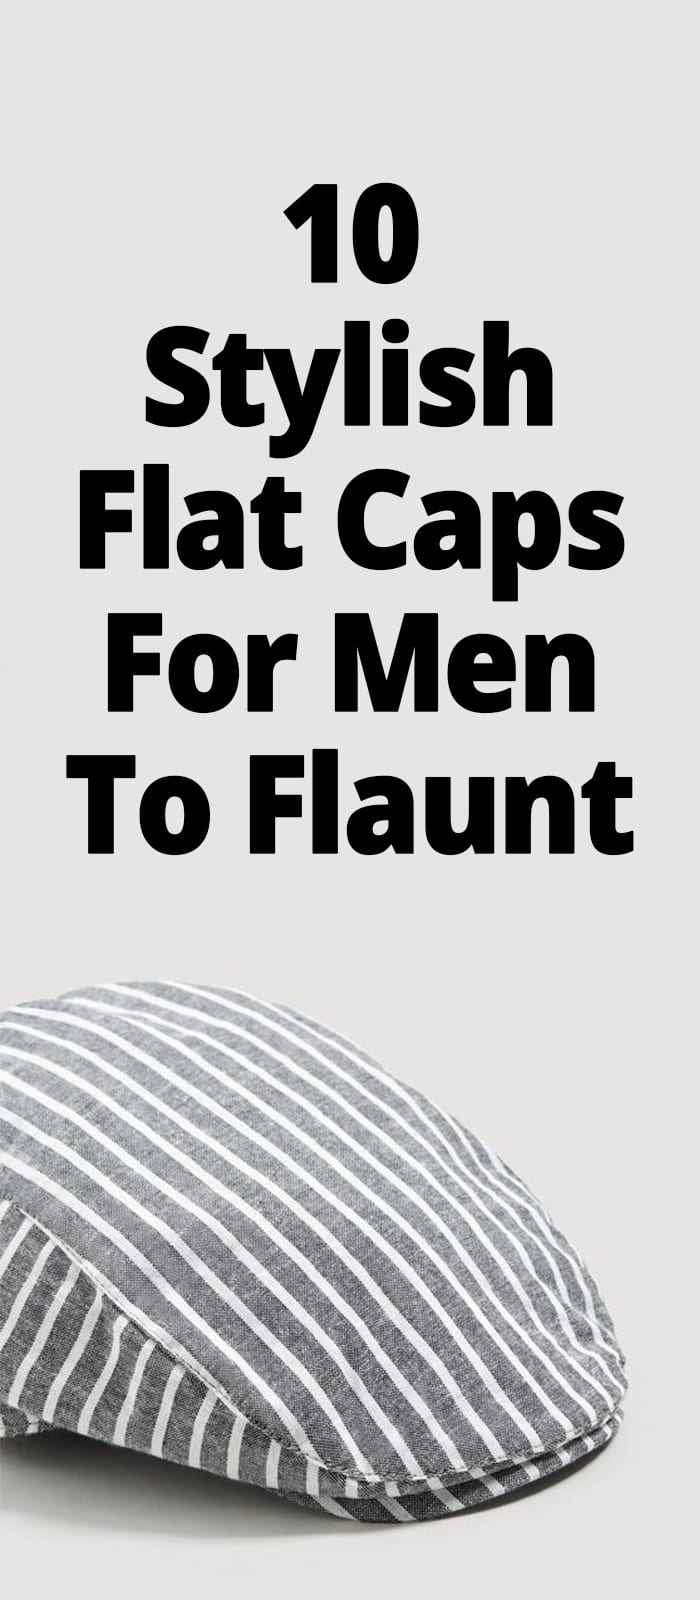 10 STYLISH FLAT CAPS FOR MEN